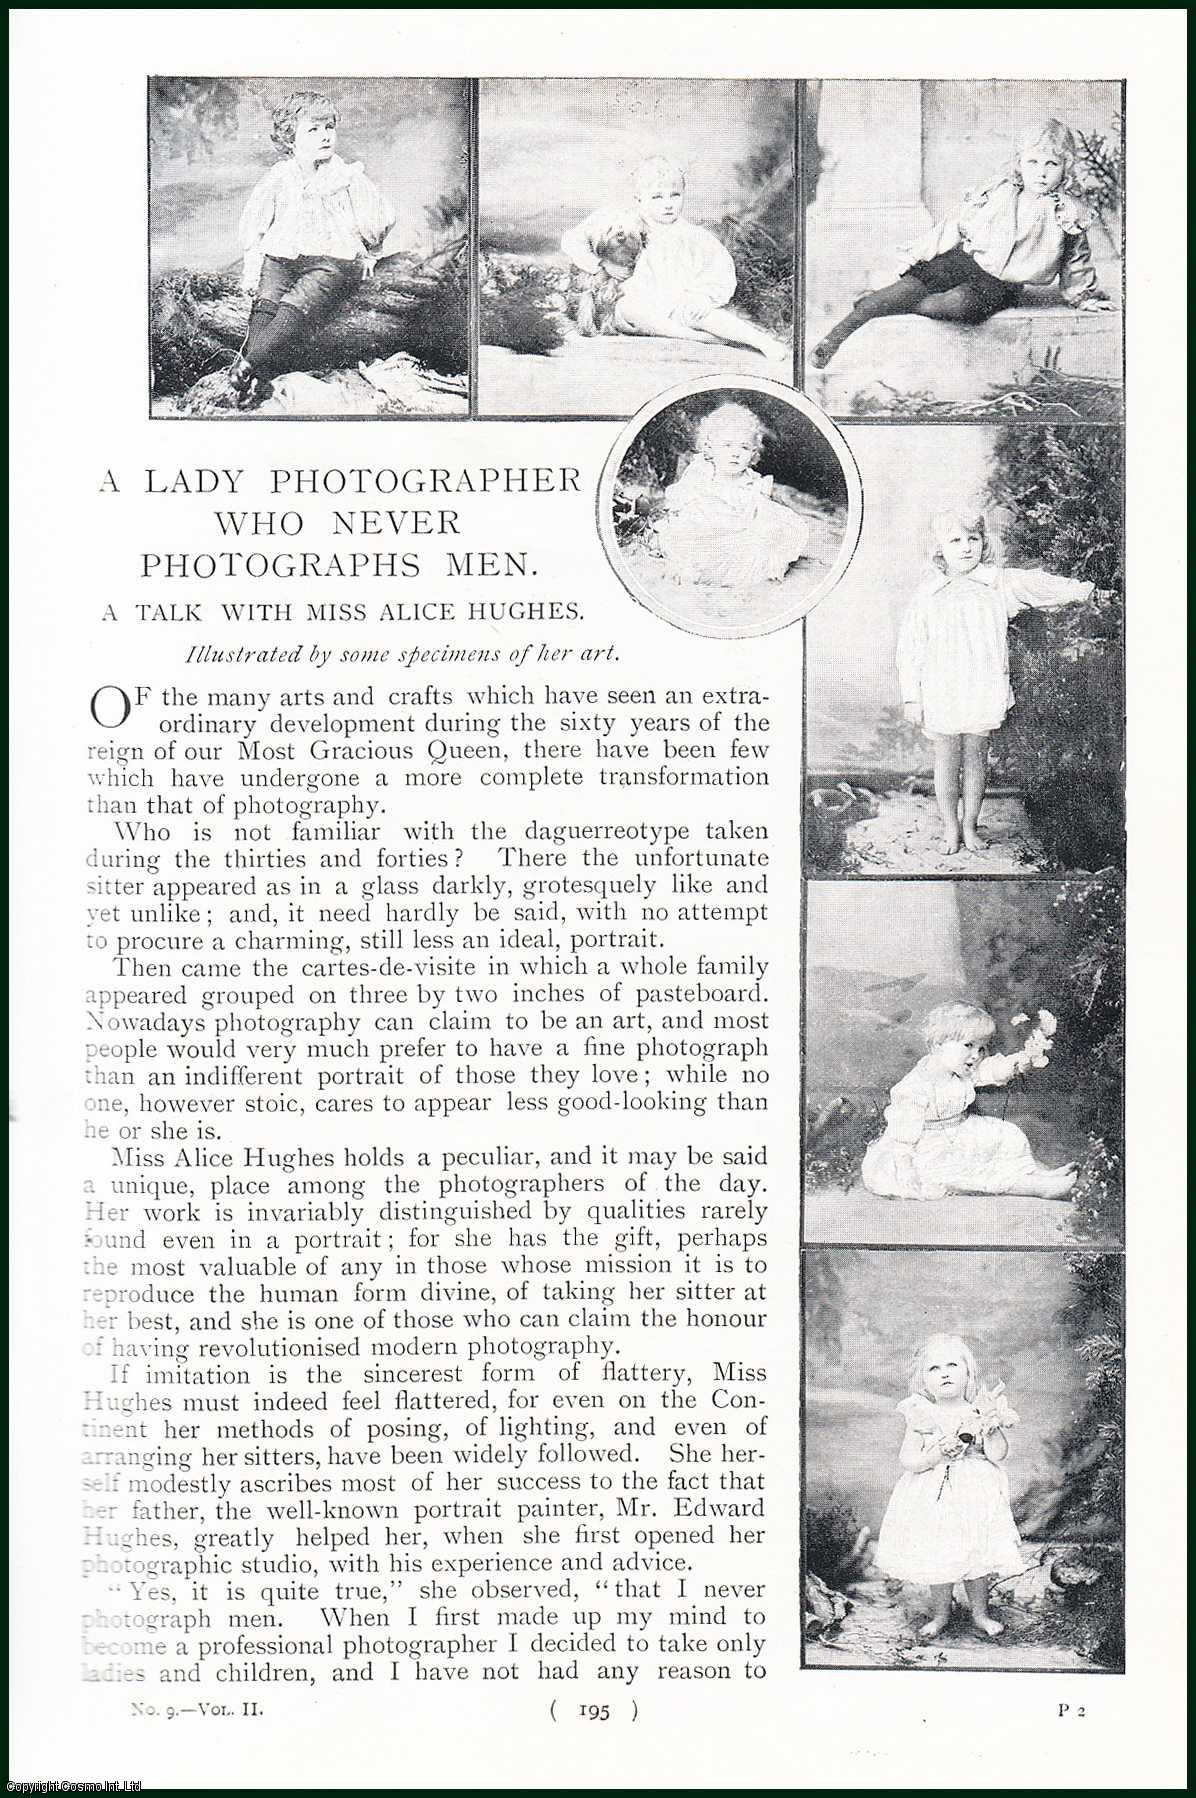 ---, --- - A Talk With Miss Alice Hughes. a Lady Photographer Who Never Photographs Men. A rare original article from the Harmsworth London Magazine, 1899.